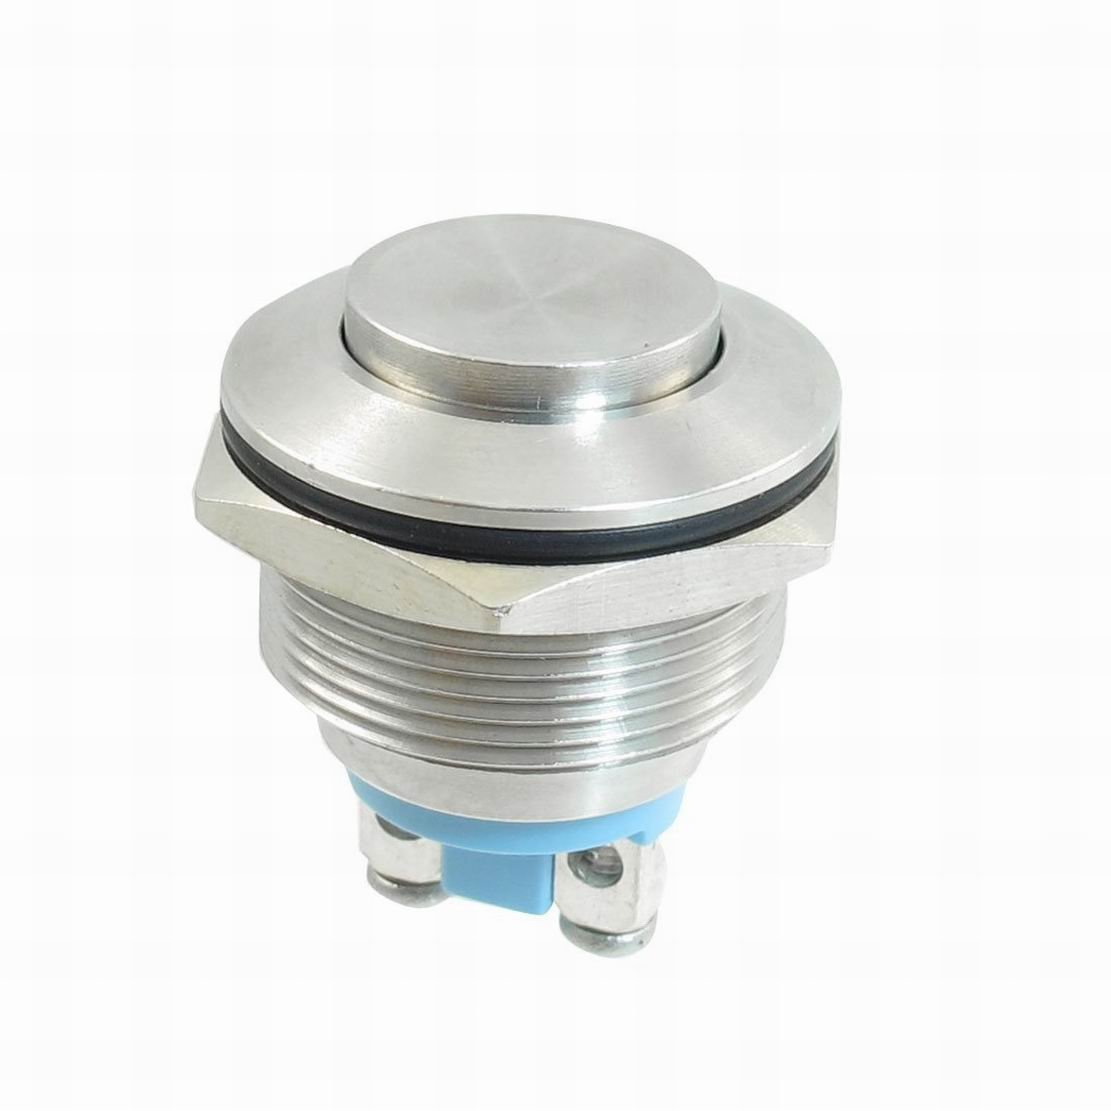 Ugtell Stainless Steel Momentary Push Button Switch 22mm Flush Mount SPST